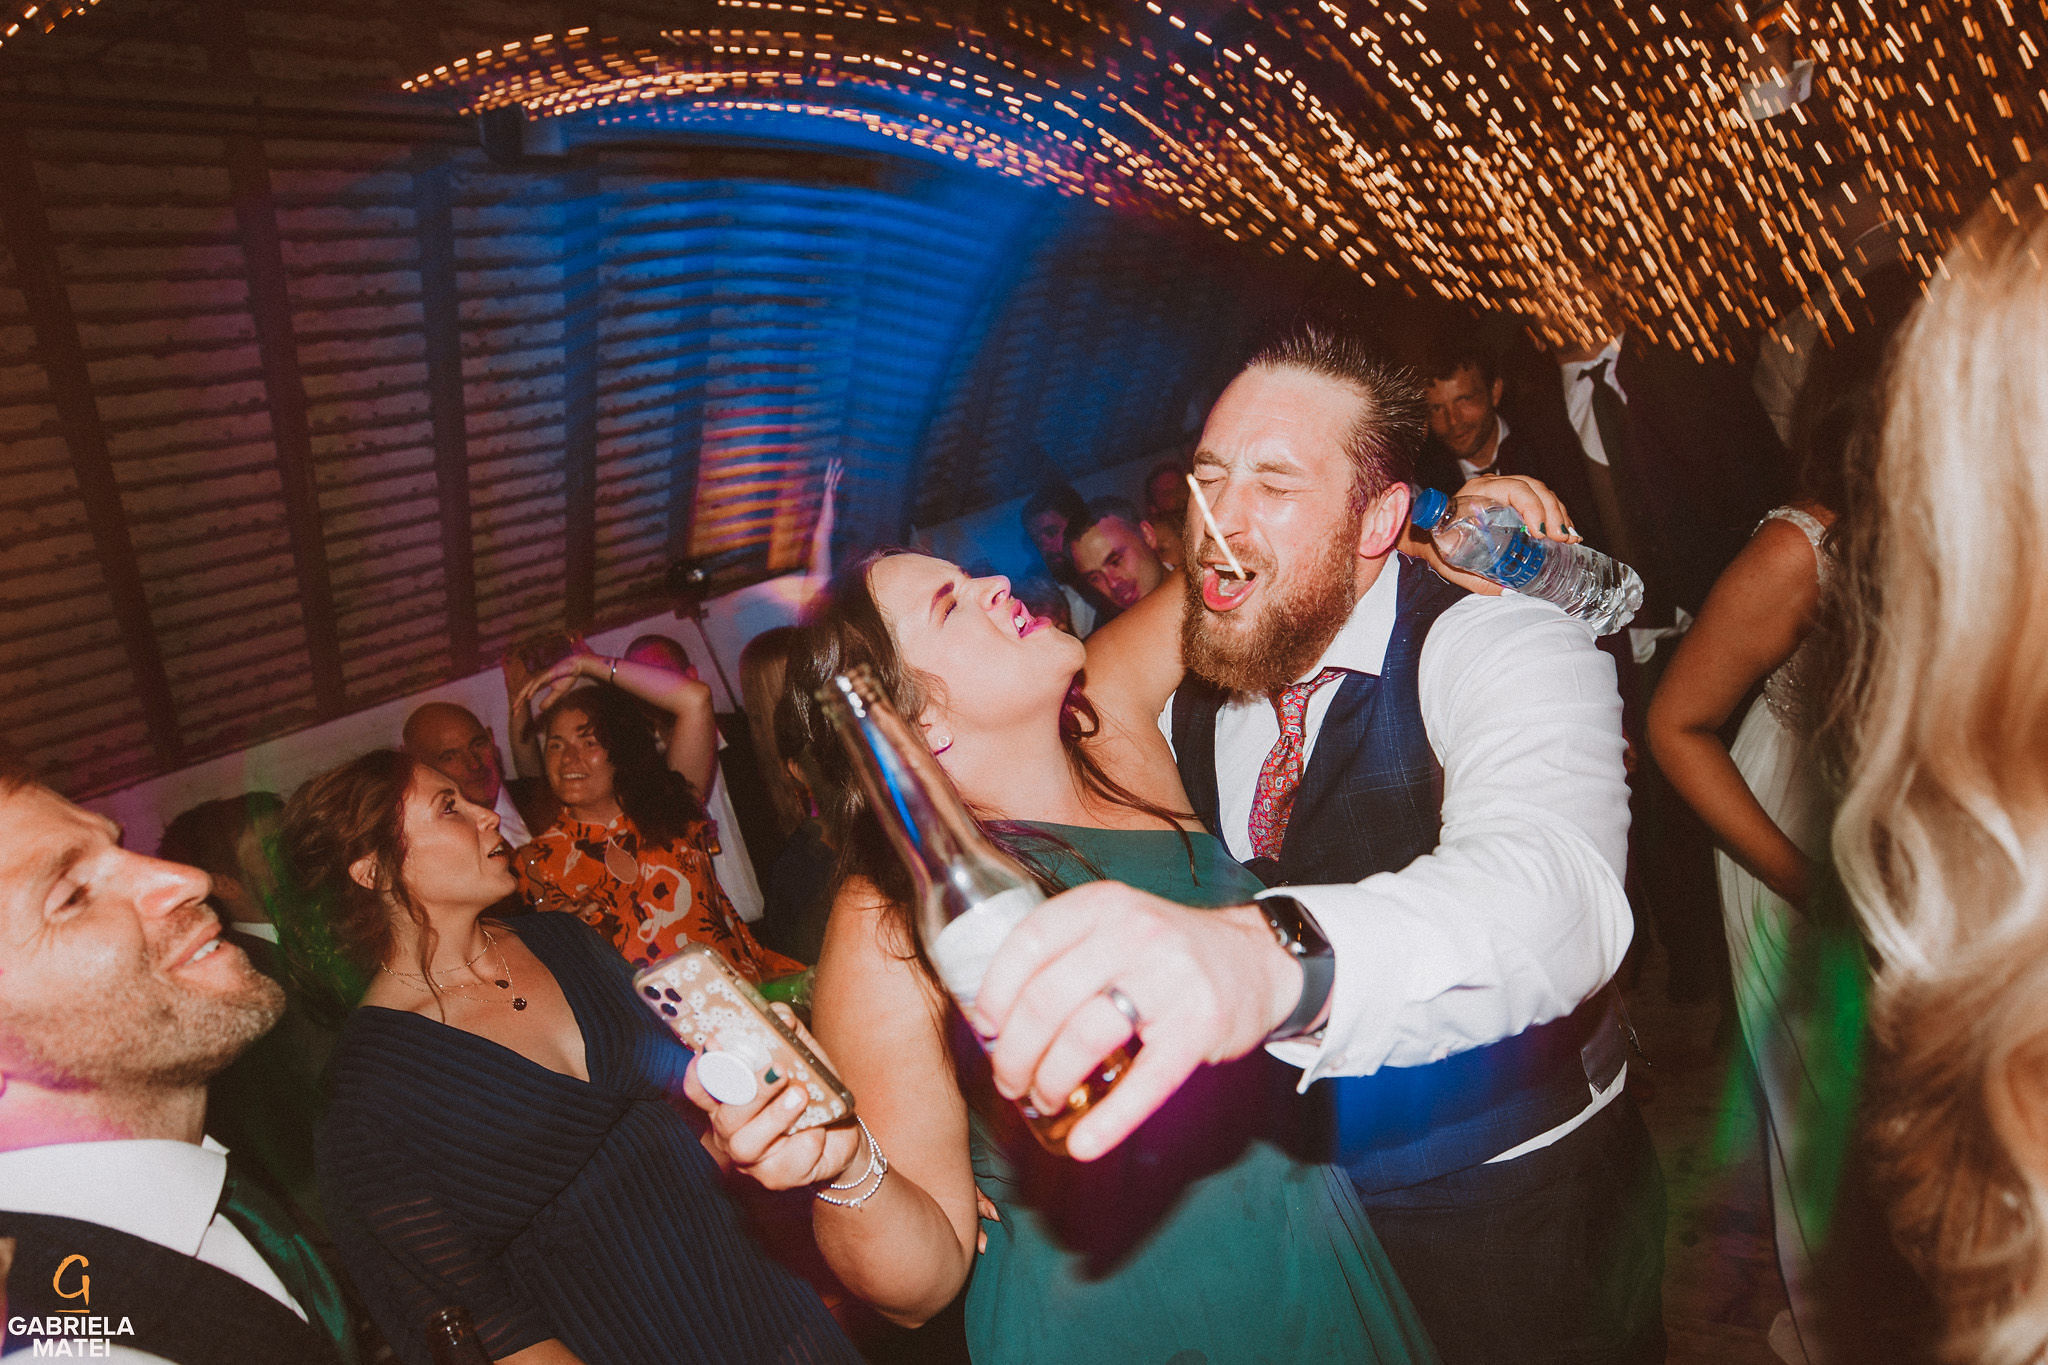 wedding couple dancing and singing at South Stoke Barn wedding venue in Arundel by gabriela matei sussex photographer